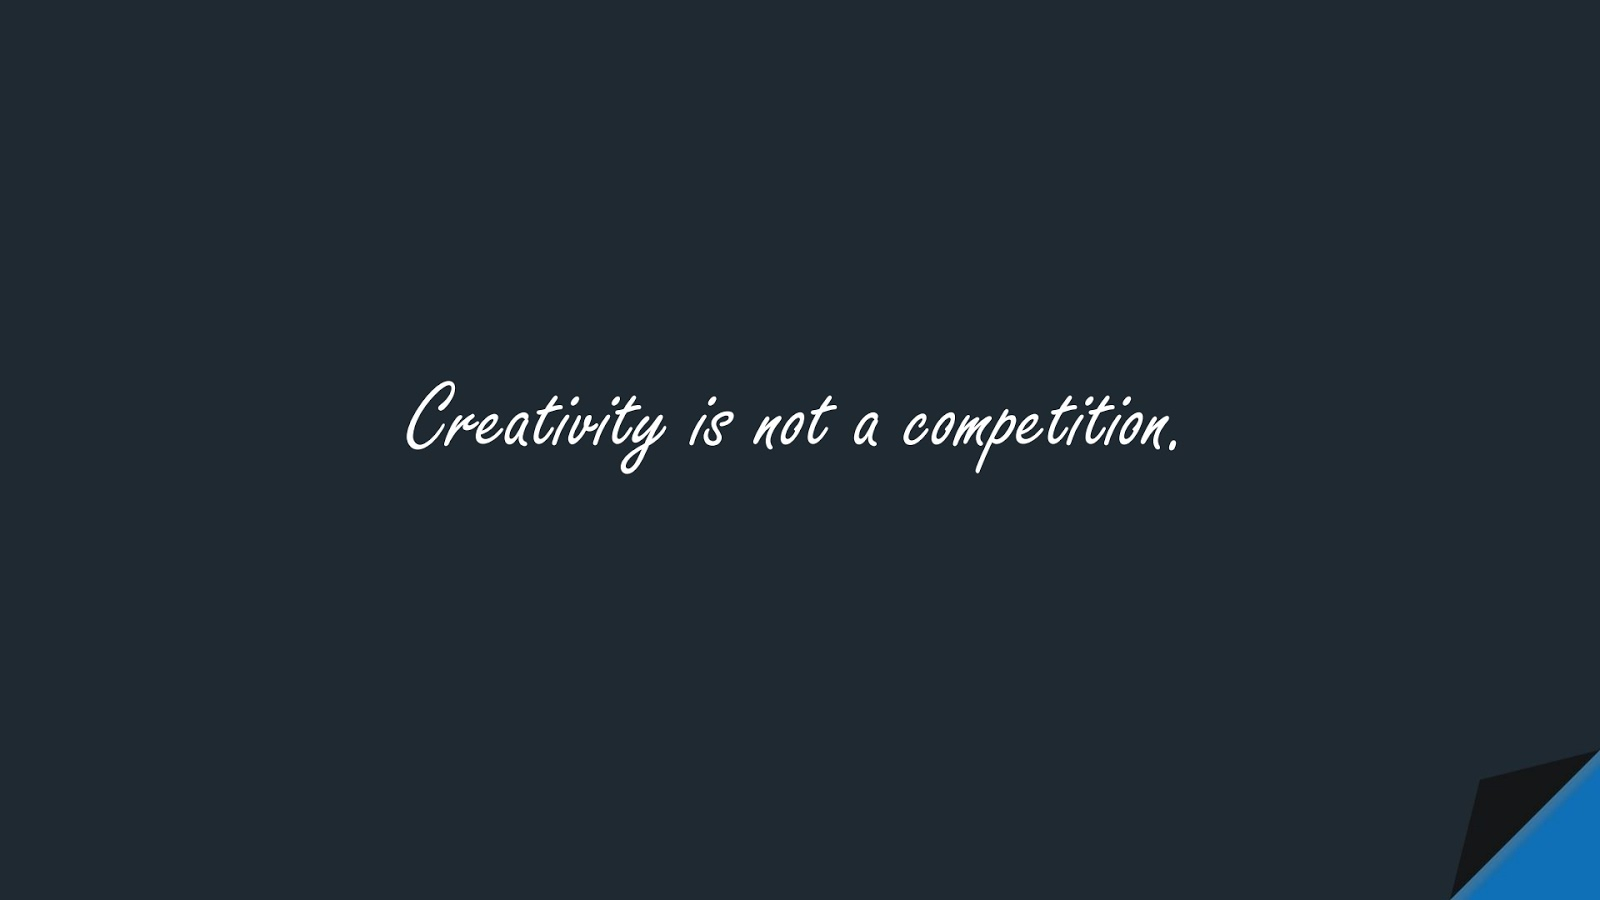 Creativity is not a competition.FALSE